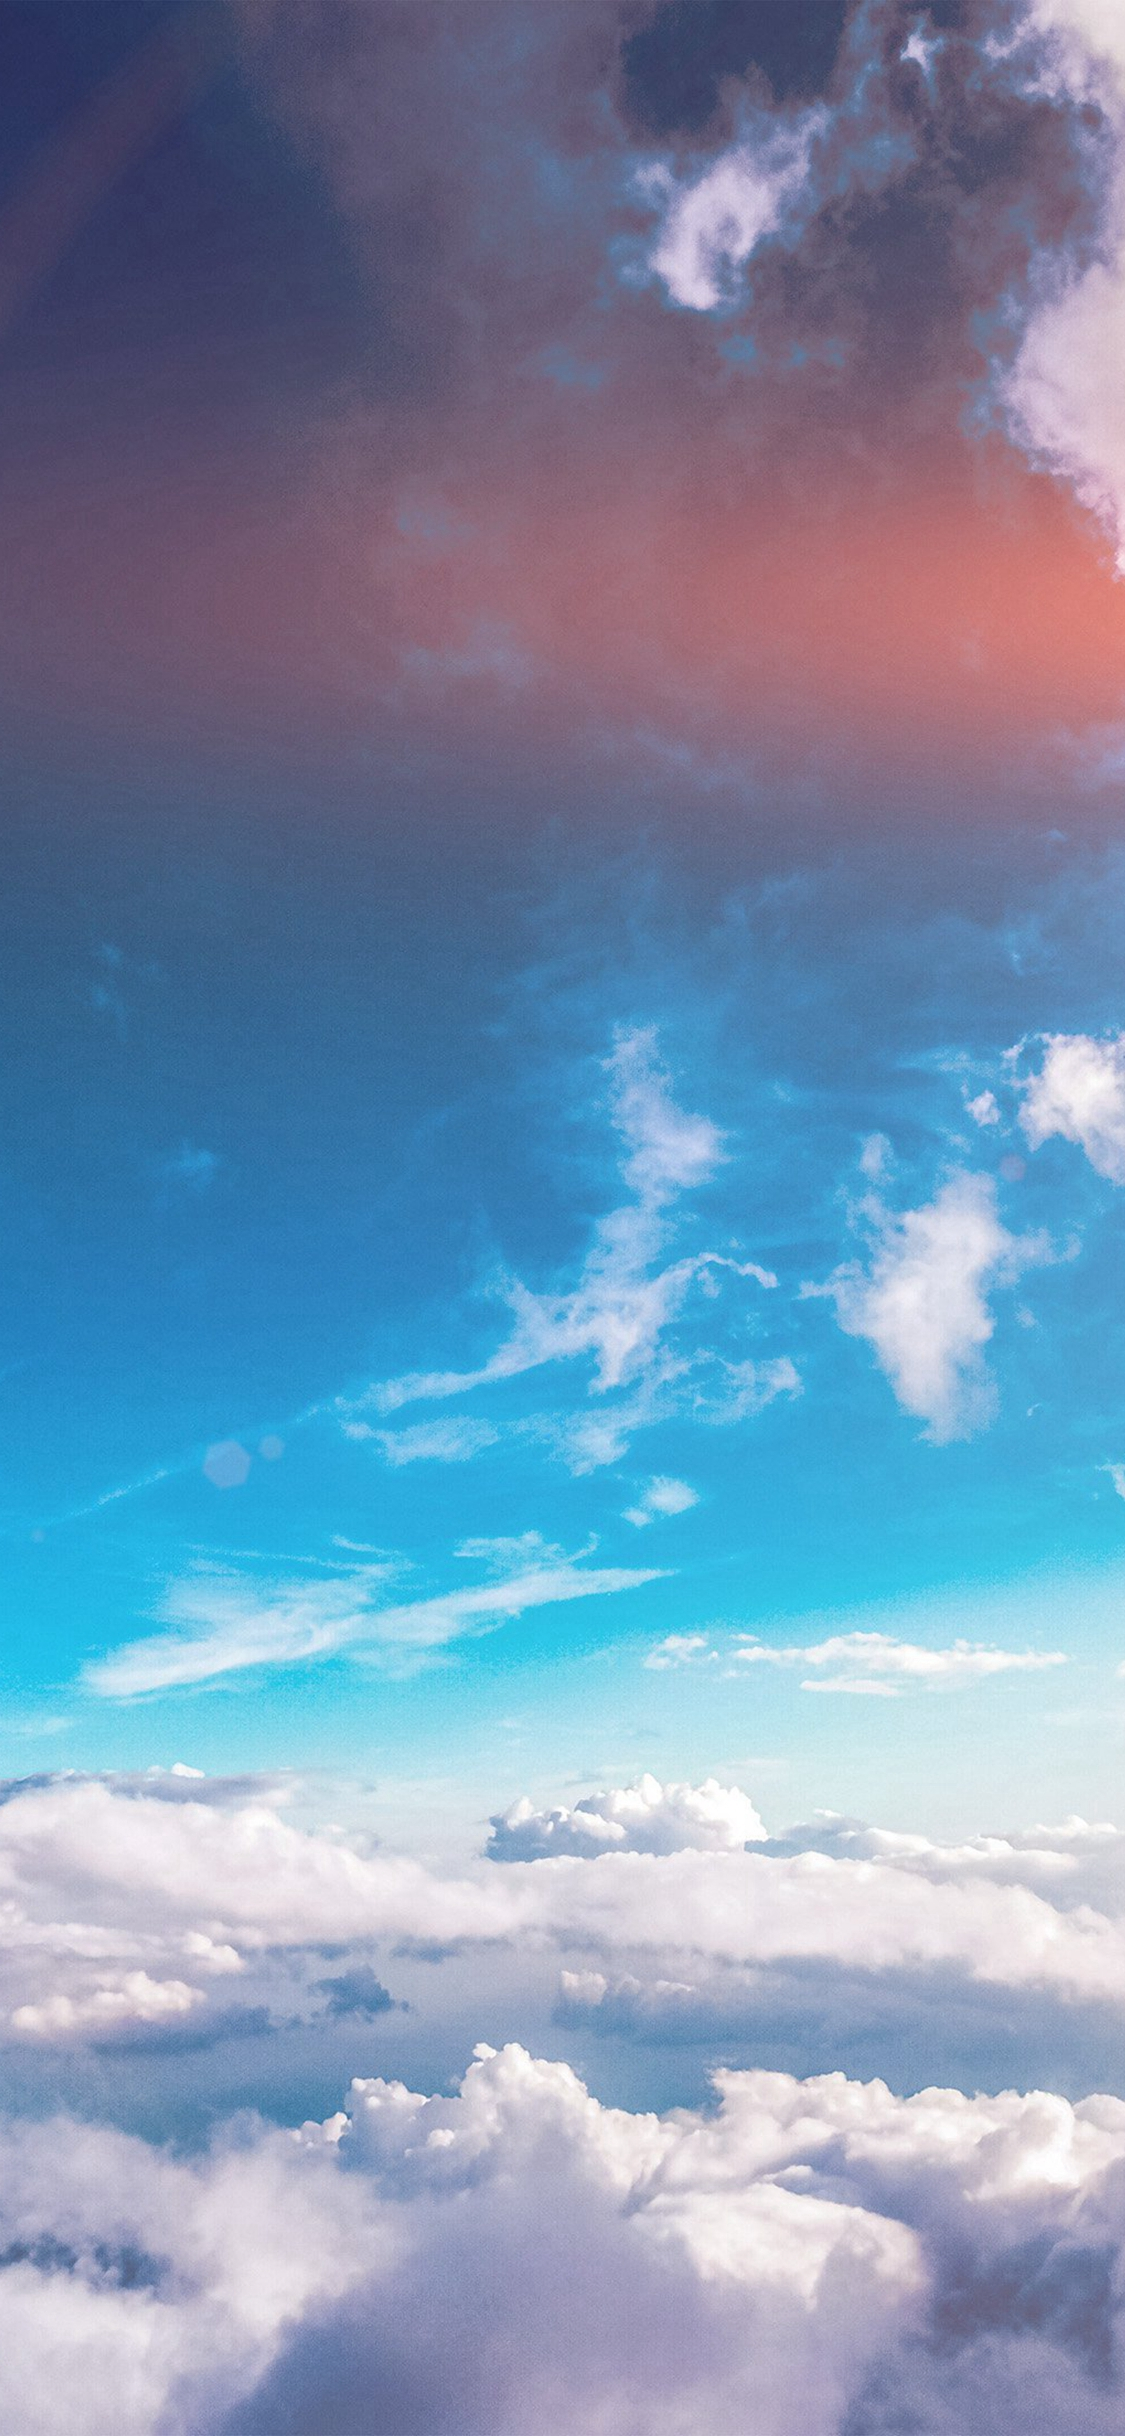 Aesthetic Clouds Wallpapers Wallpaper Cave